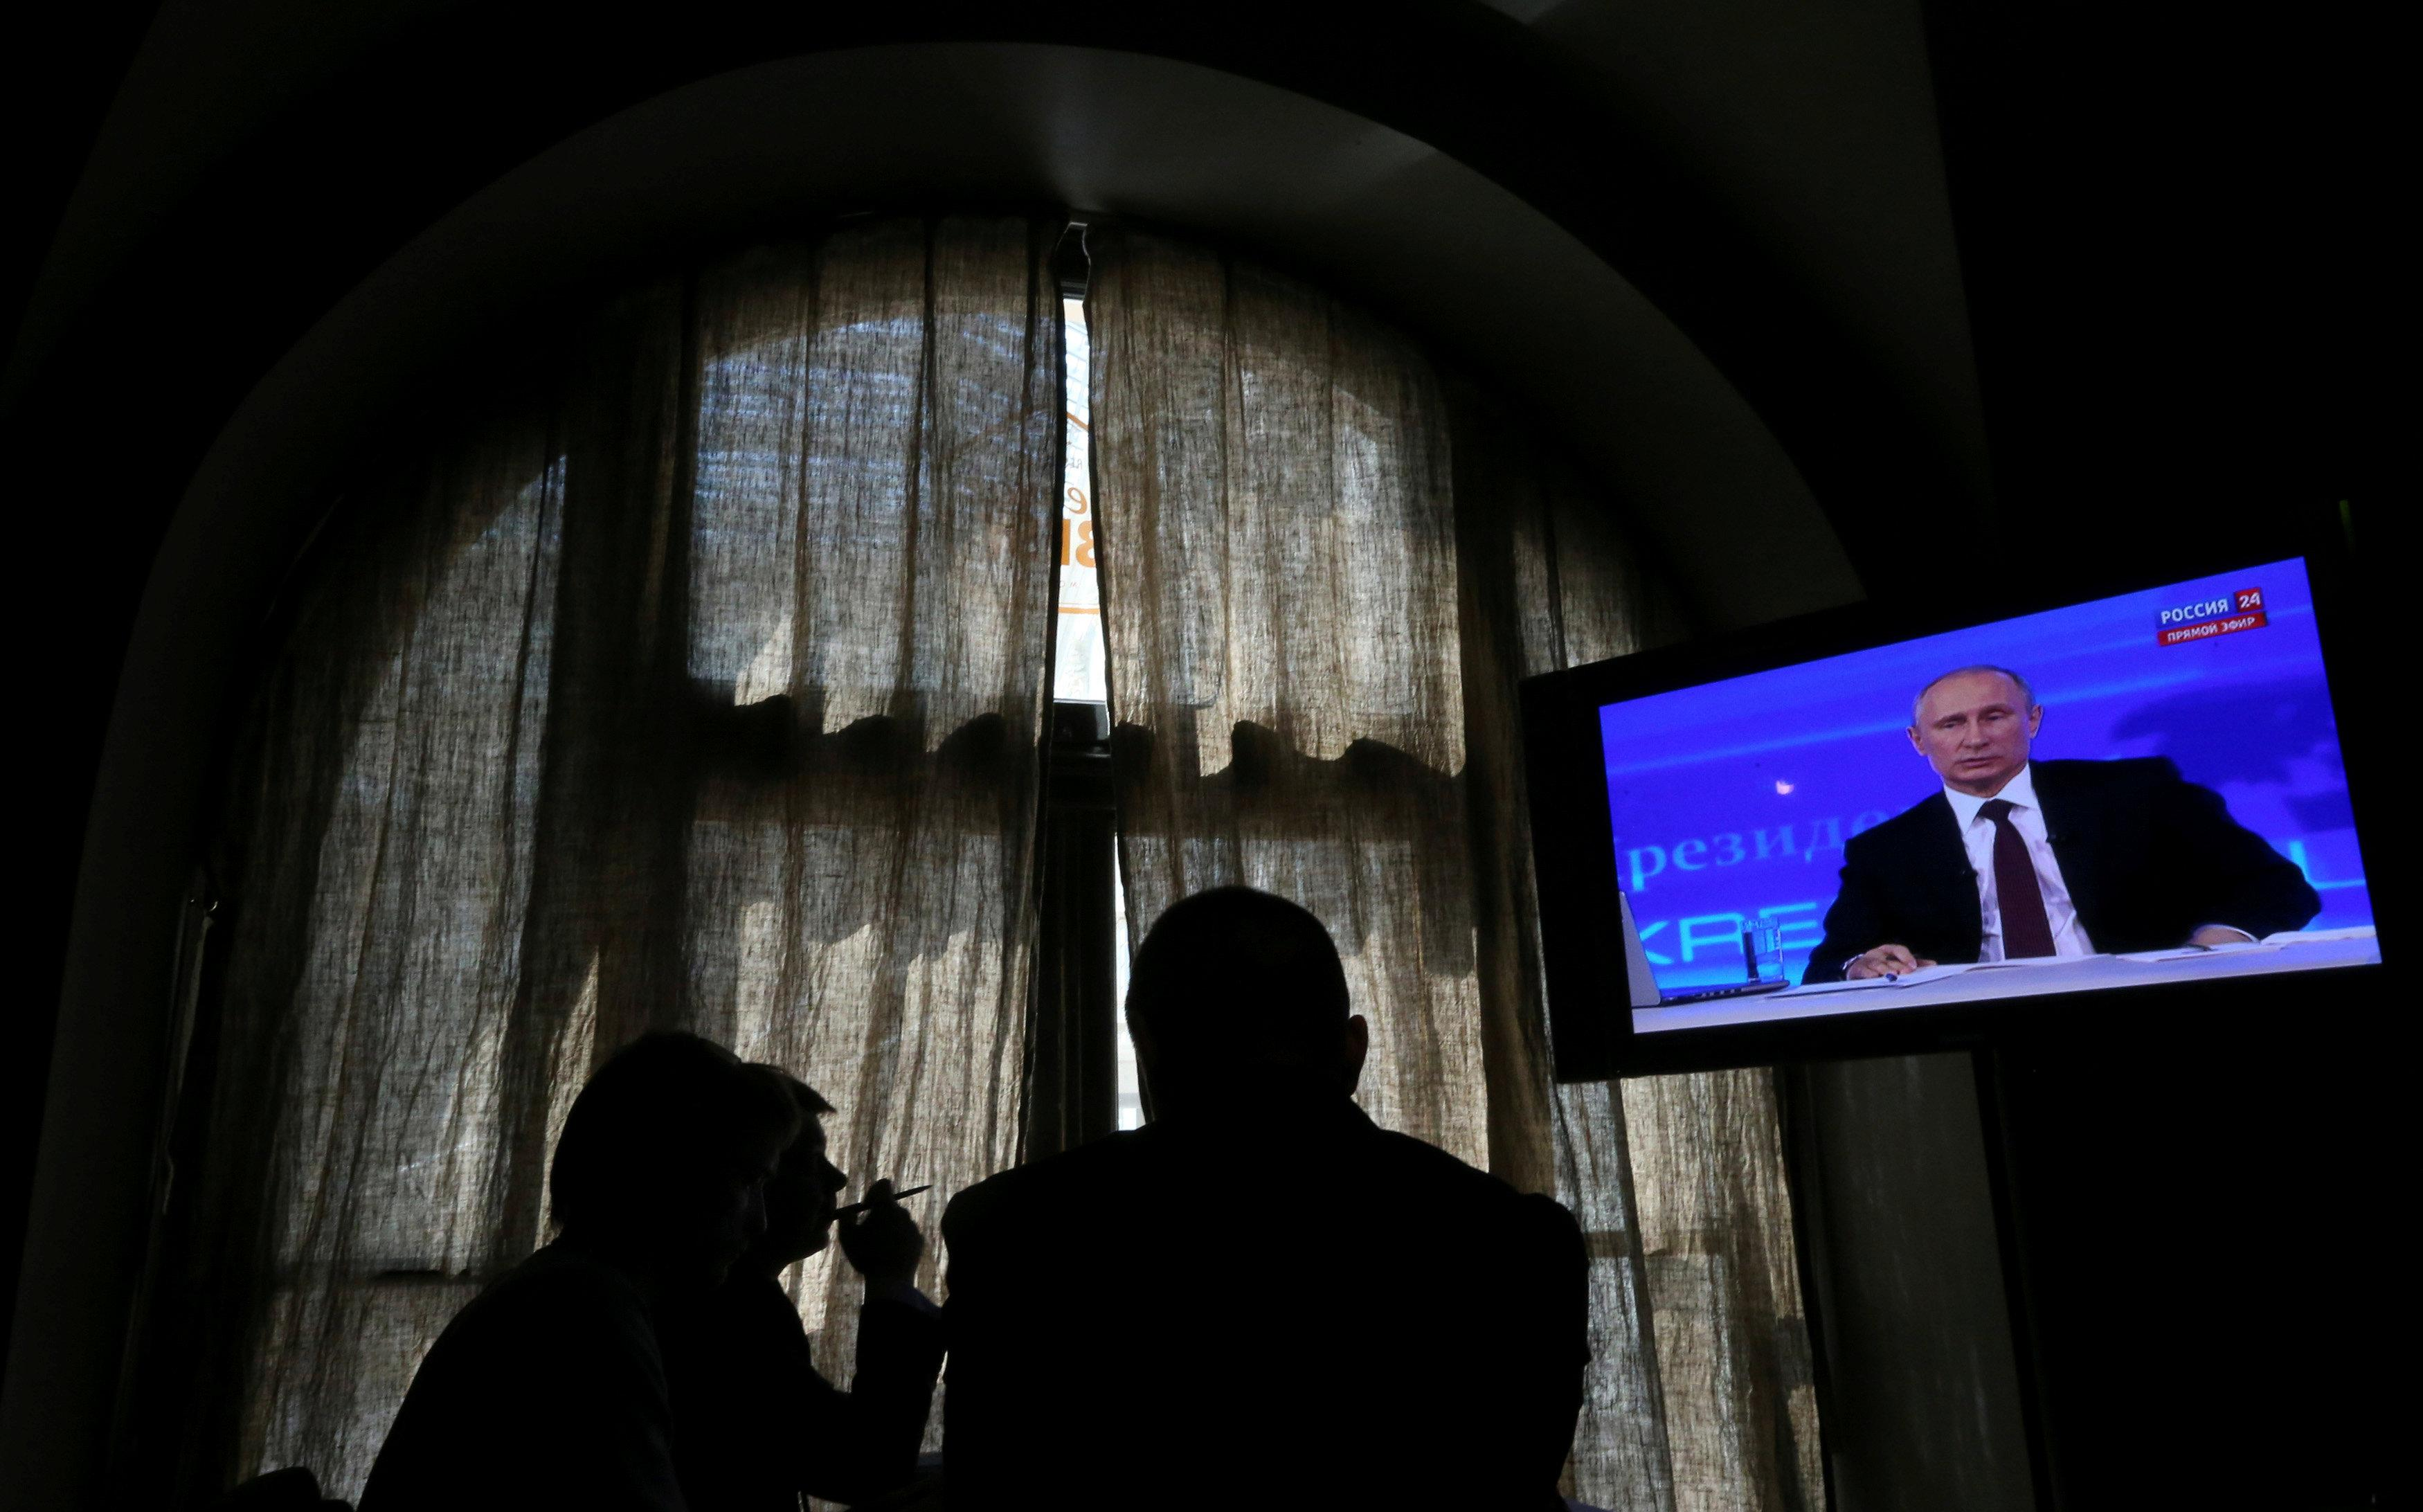 People look at a screen at a media centre during Russian President Vladimir Putin's live broadcast nationwide phone-in in Moscow, Russia April 17, 2014. Sergei Karpukhin